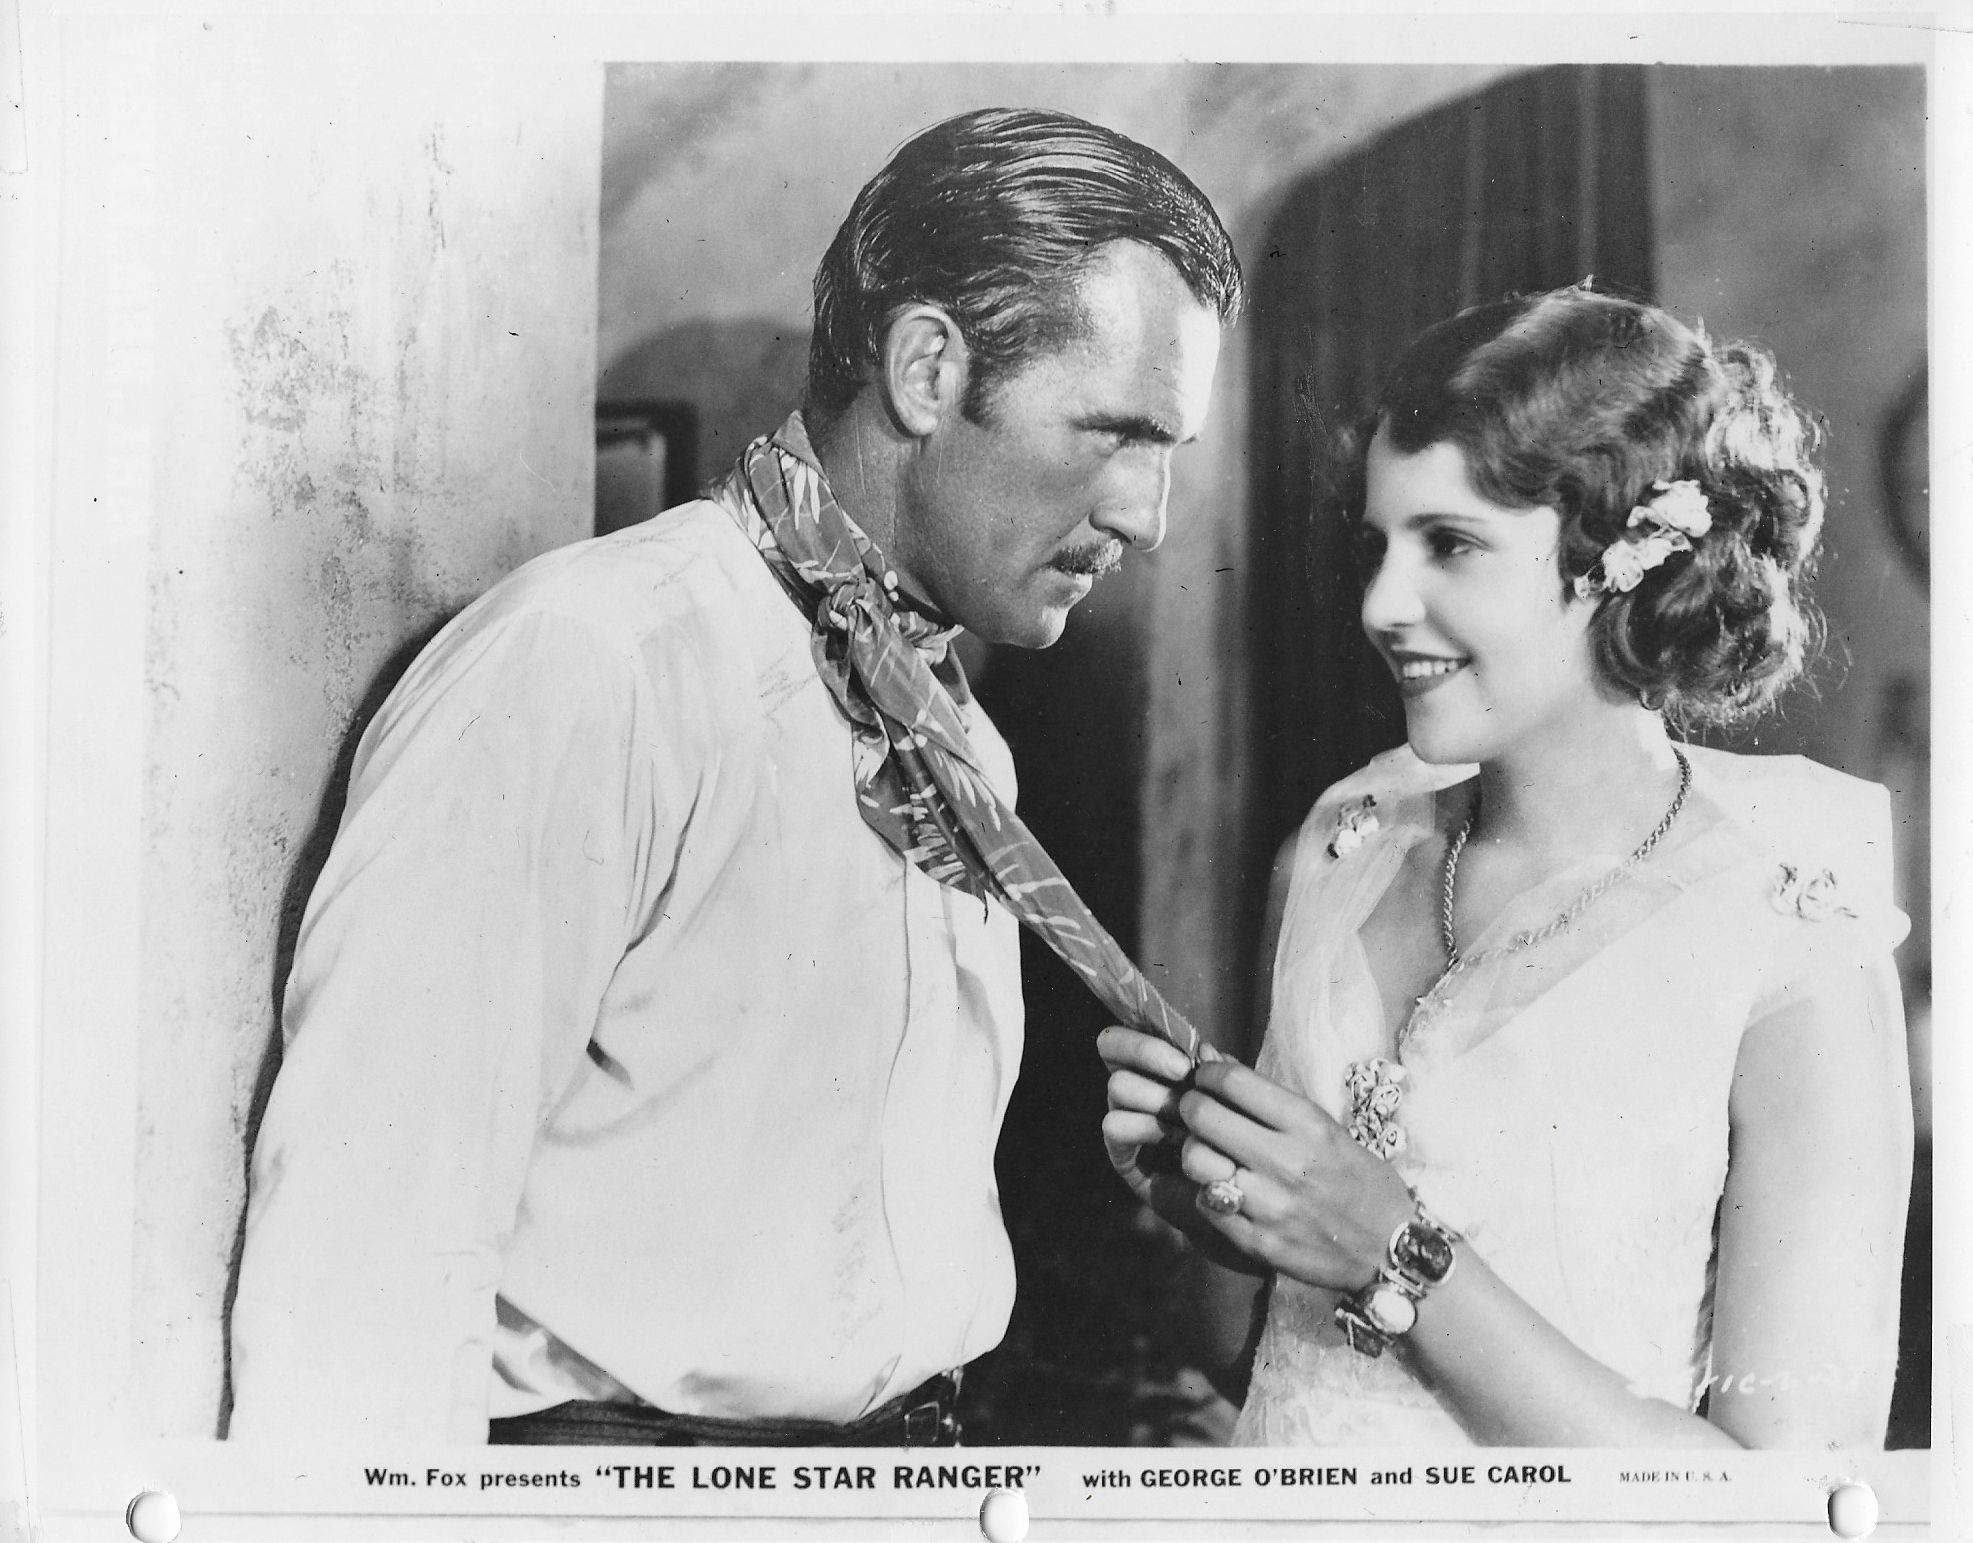 Sue Carol and Walter McGrail in The Lone Star Ranger (1930)